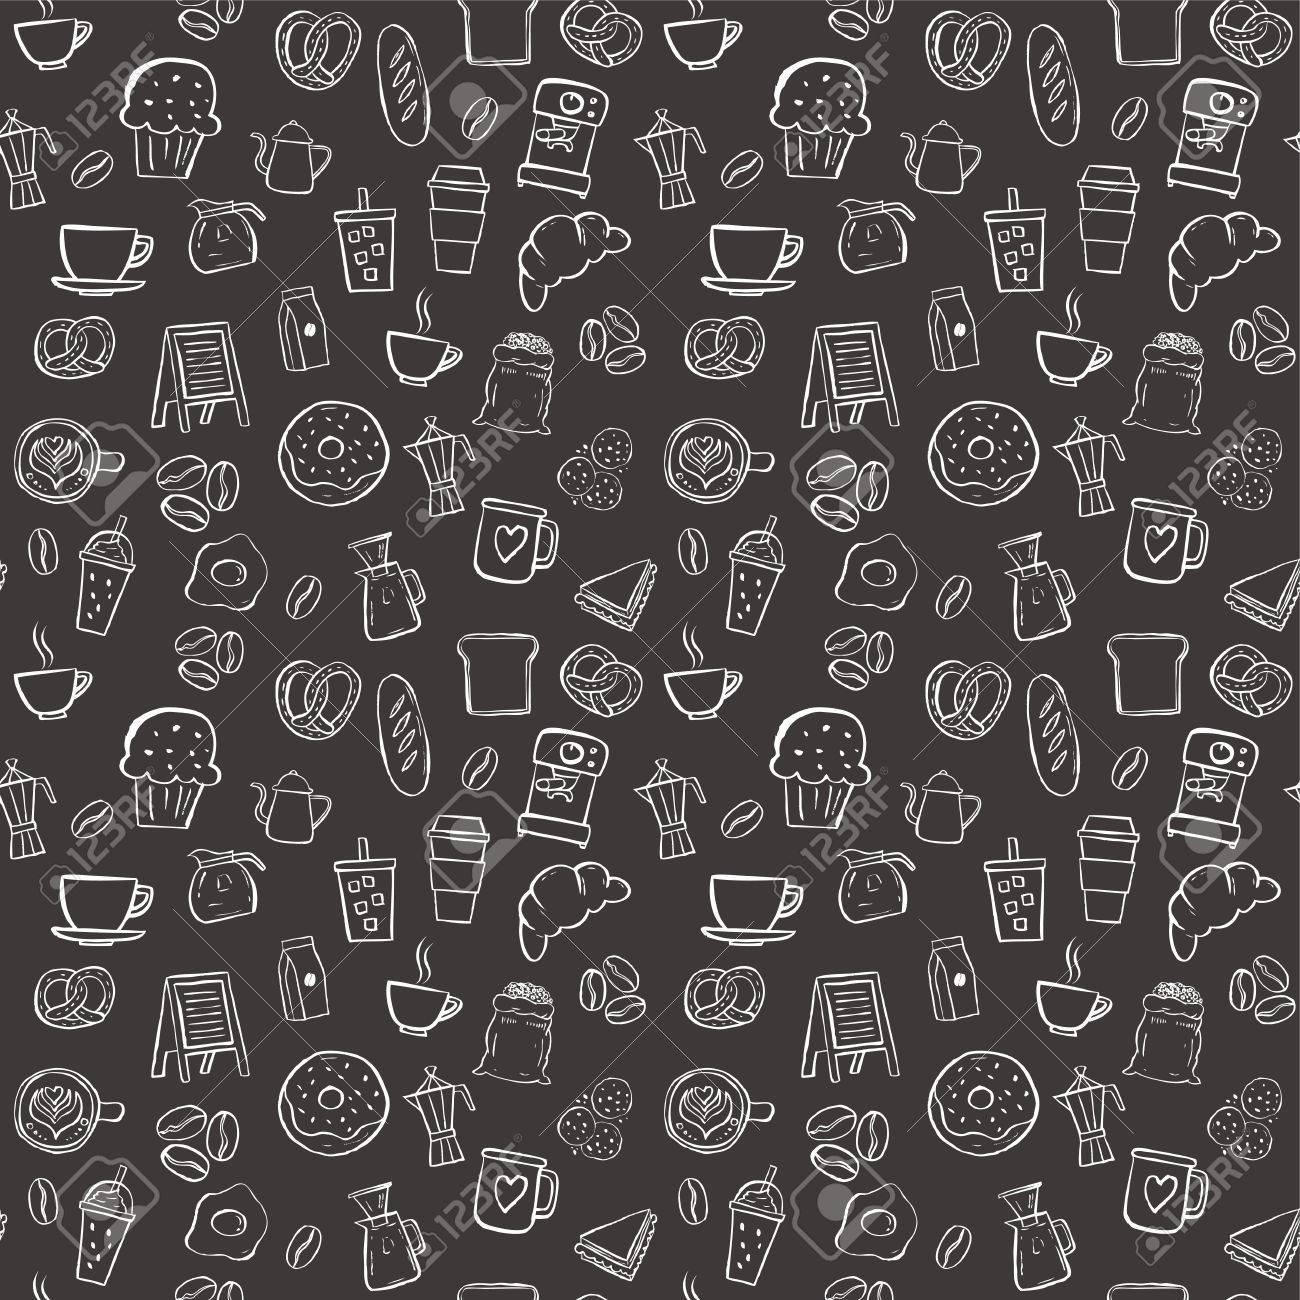 Coffee Shop Doodle Seamless Pattern Background Royalty 1300x1300